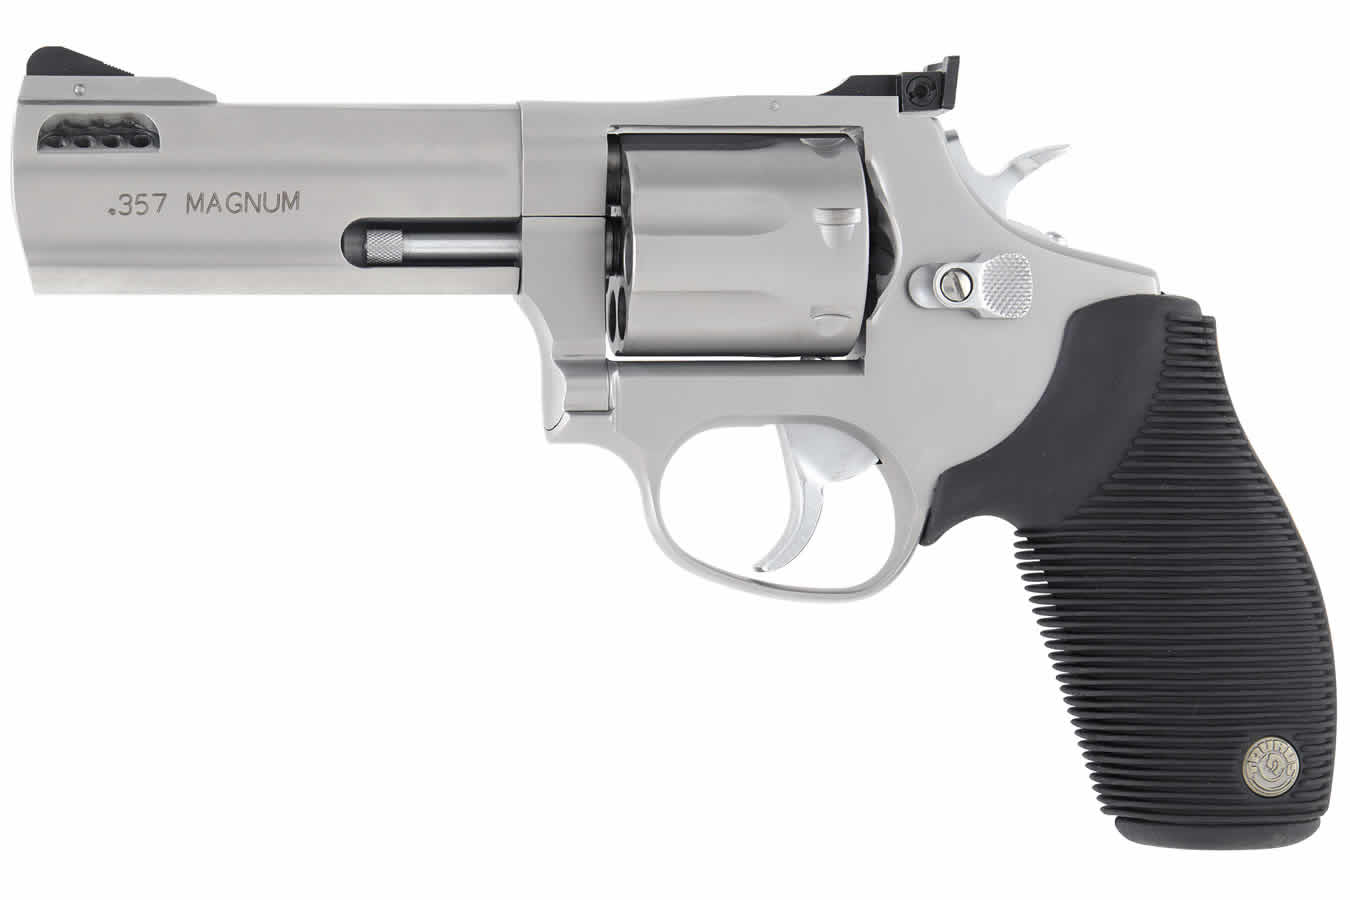 TRACKER 627 .357 MAG STAINLESS 4 INCH